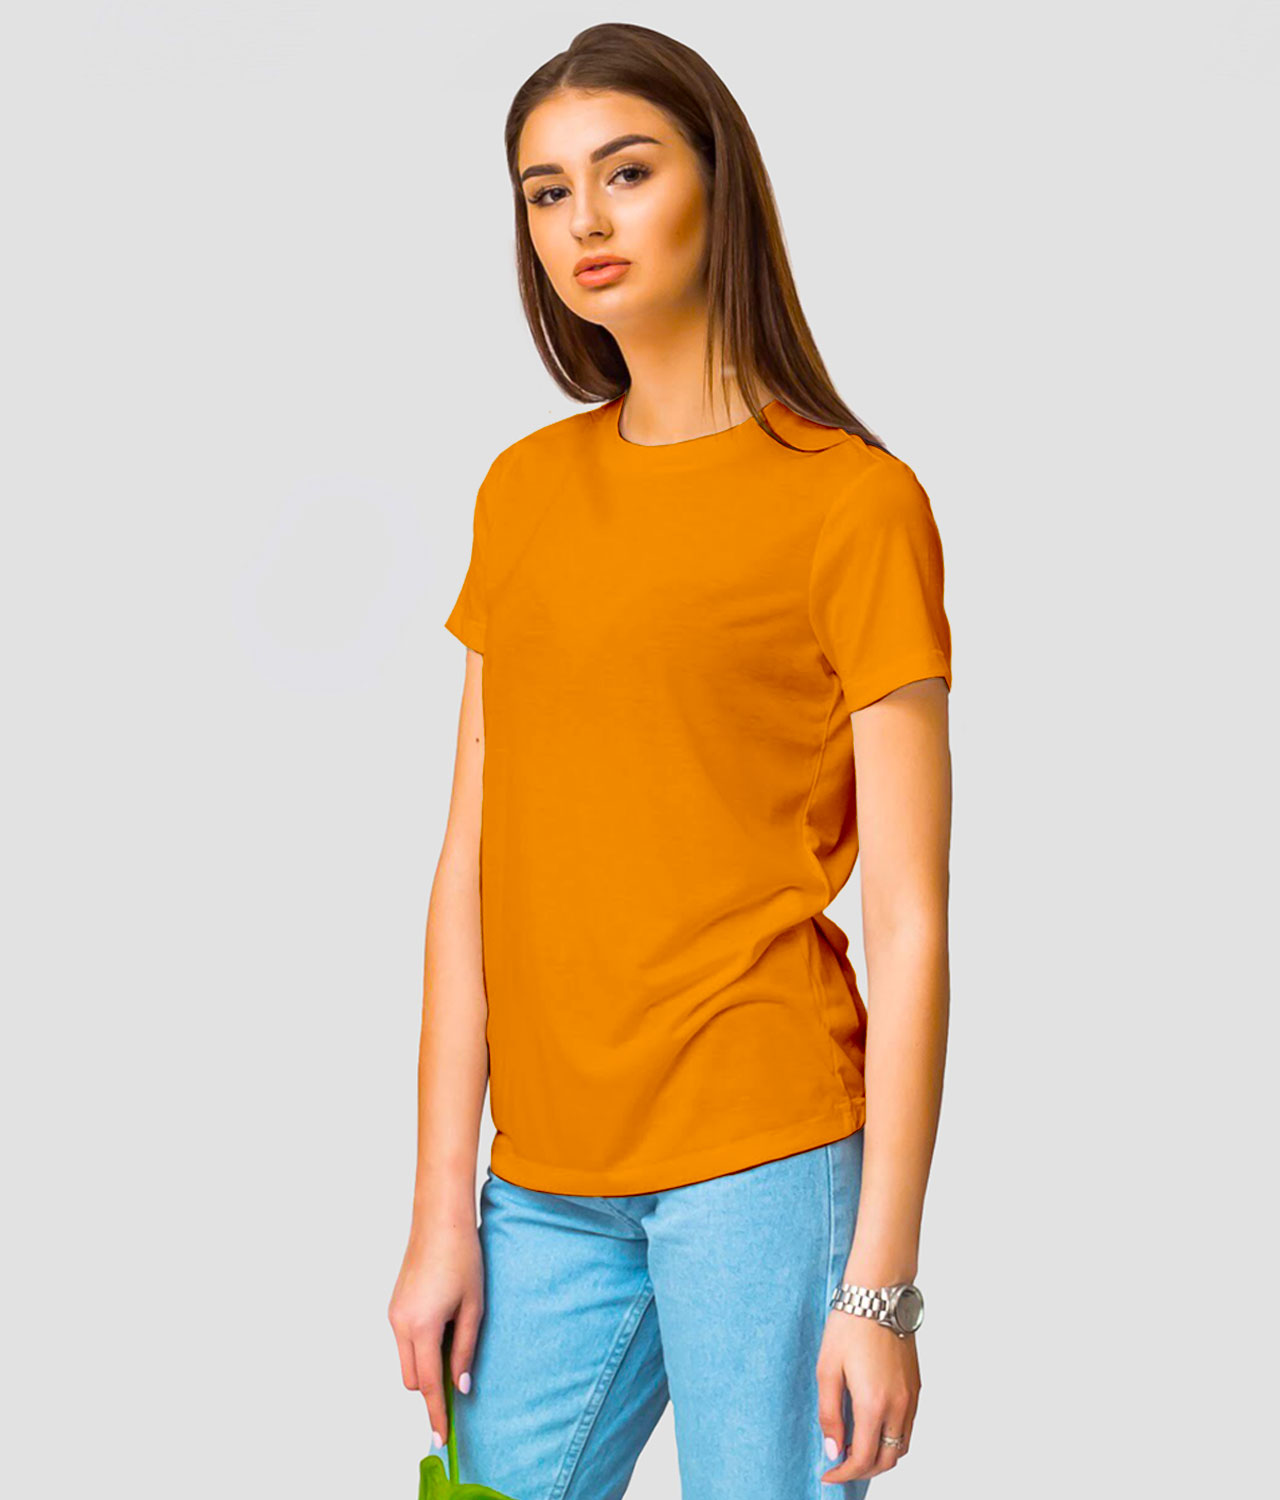 Women's T shirts Online Low Price Offer on T shirts for Women